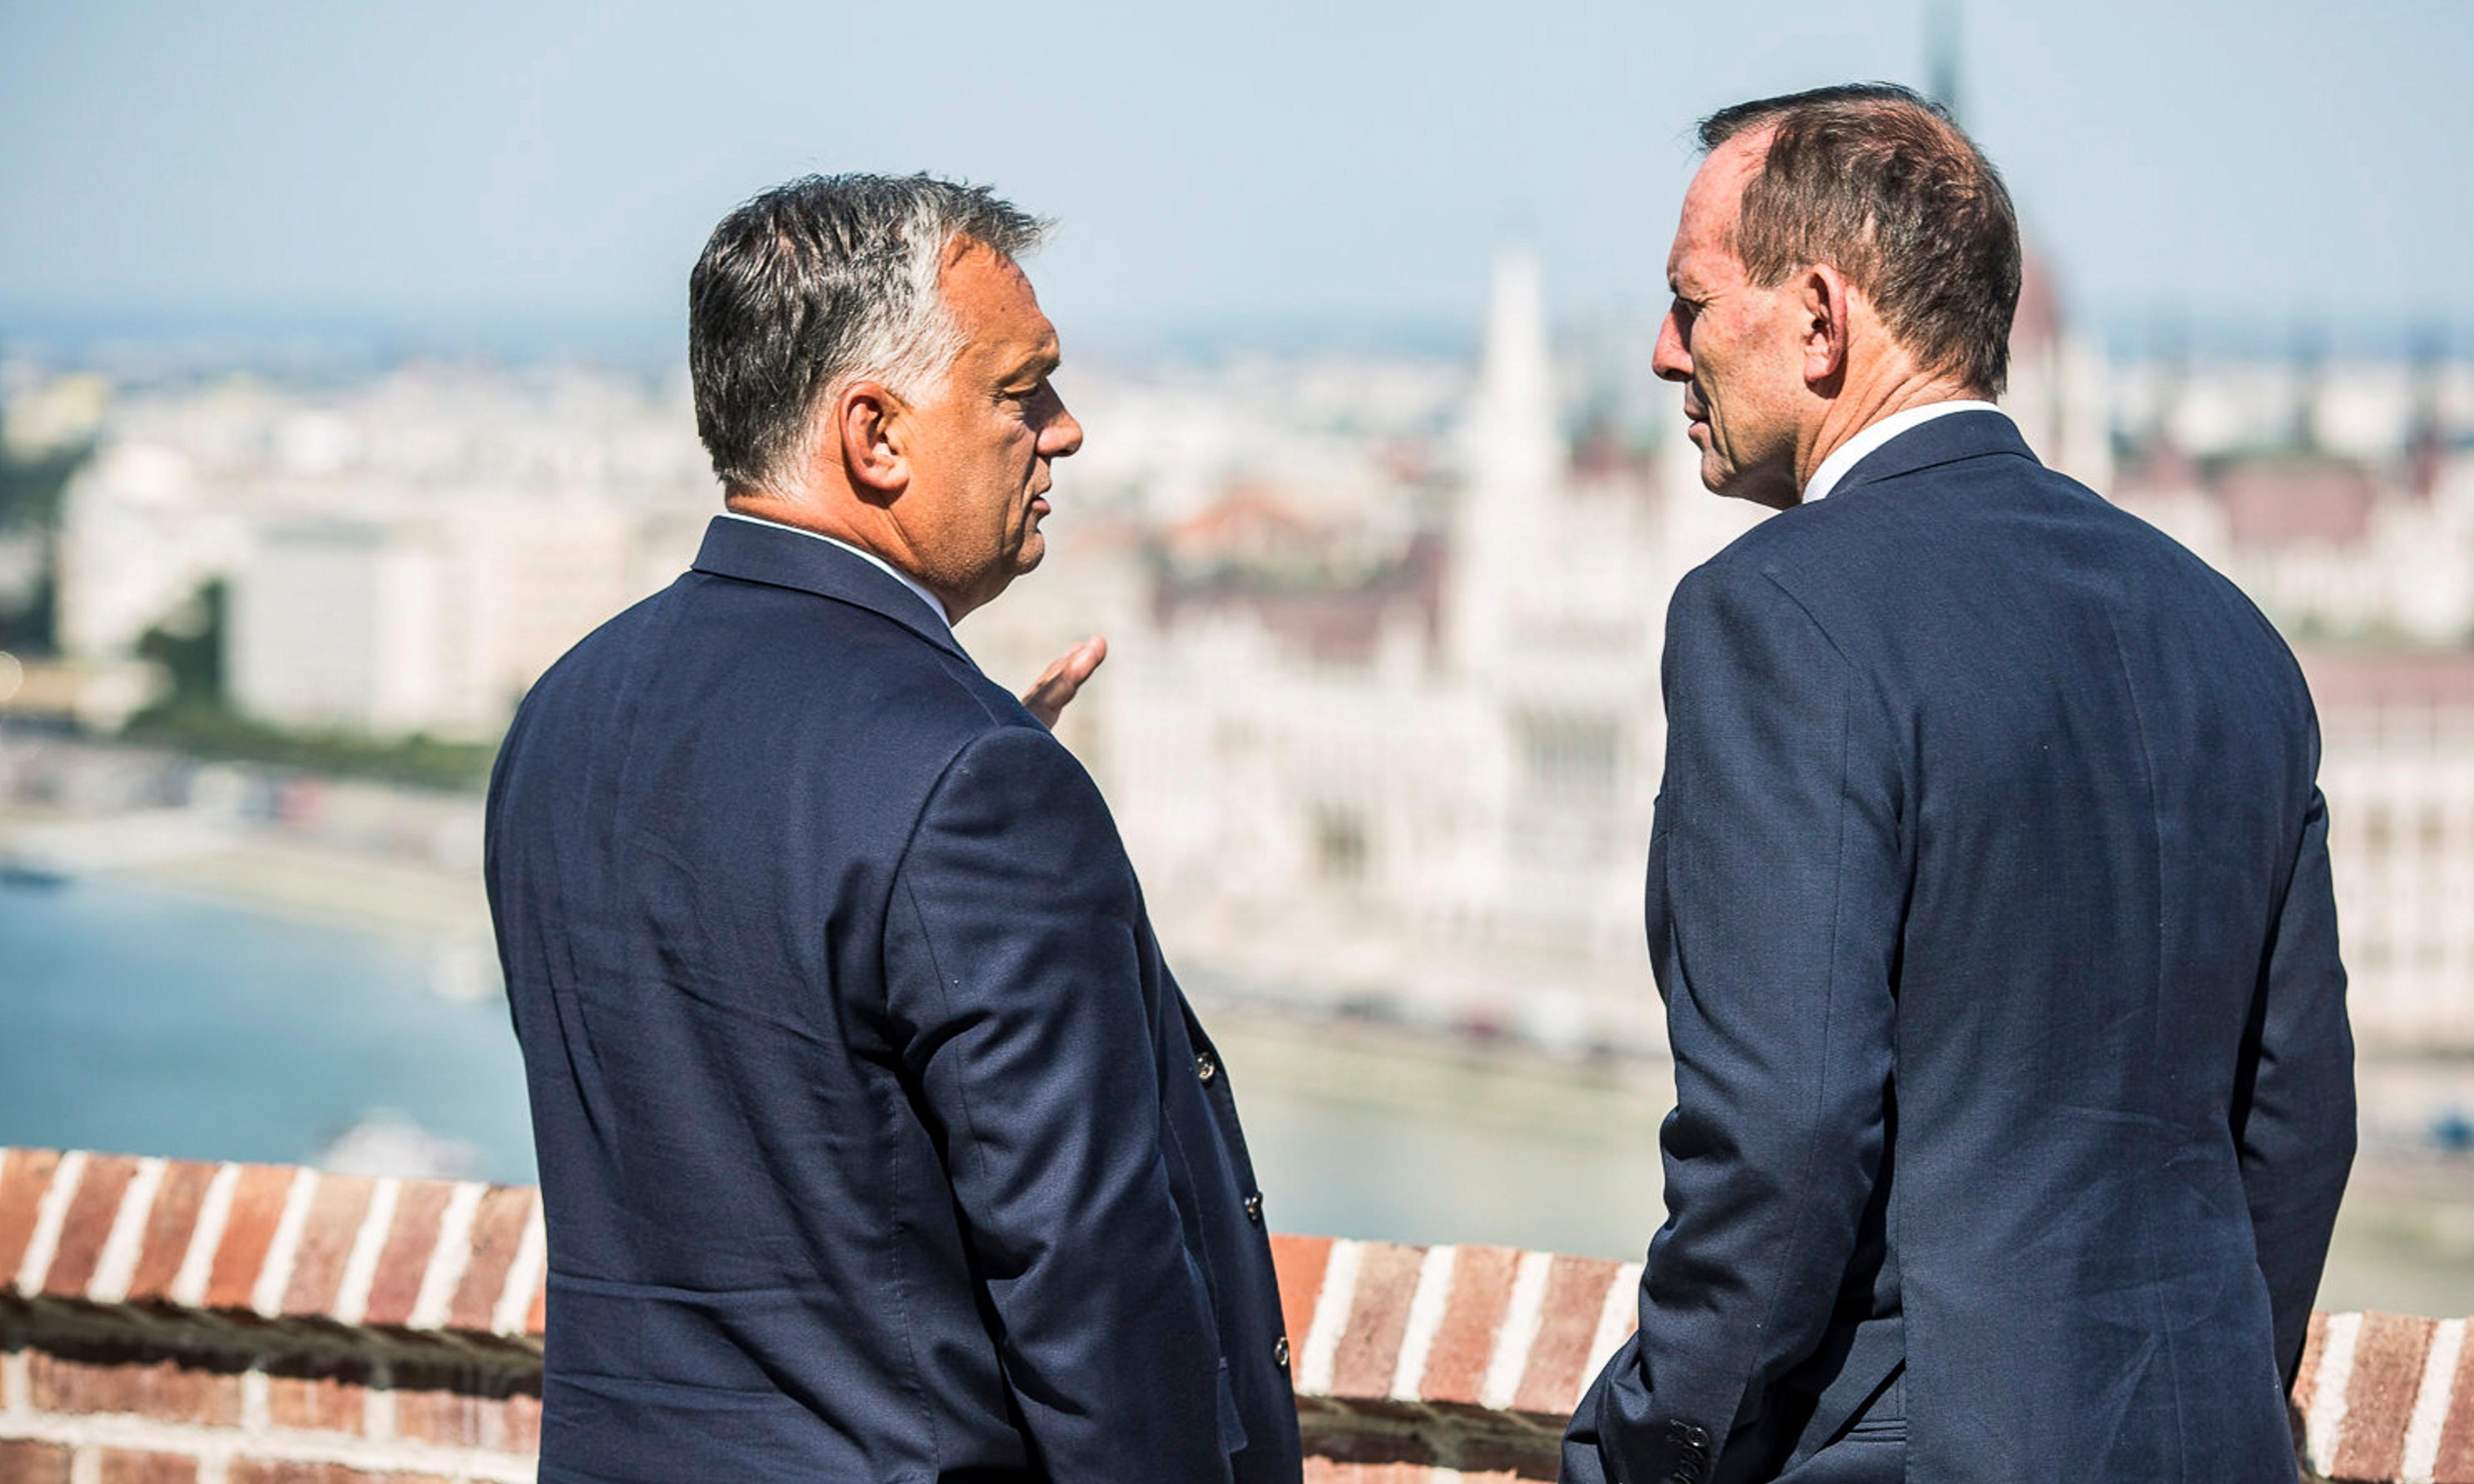 Tony Abbott attacks migrants 'swarming' to Europe while praising far-right PM of Hungary